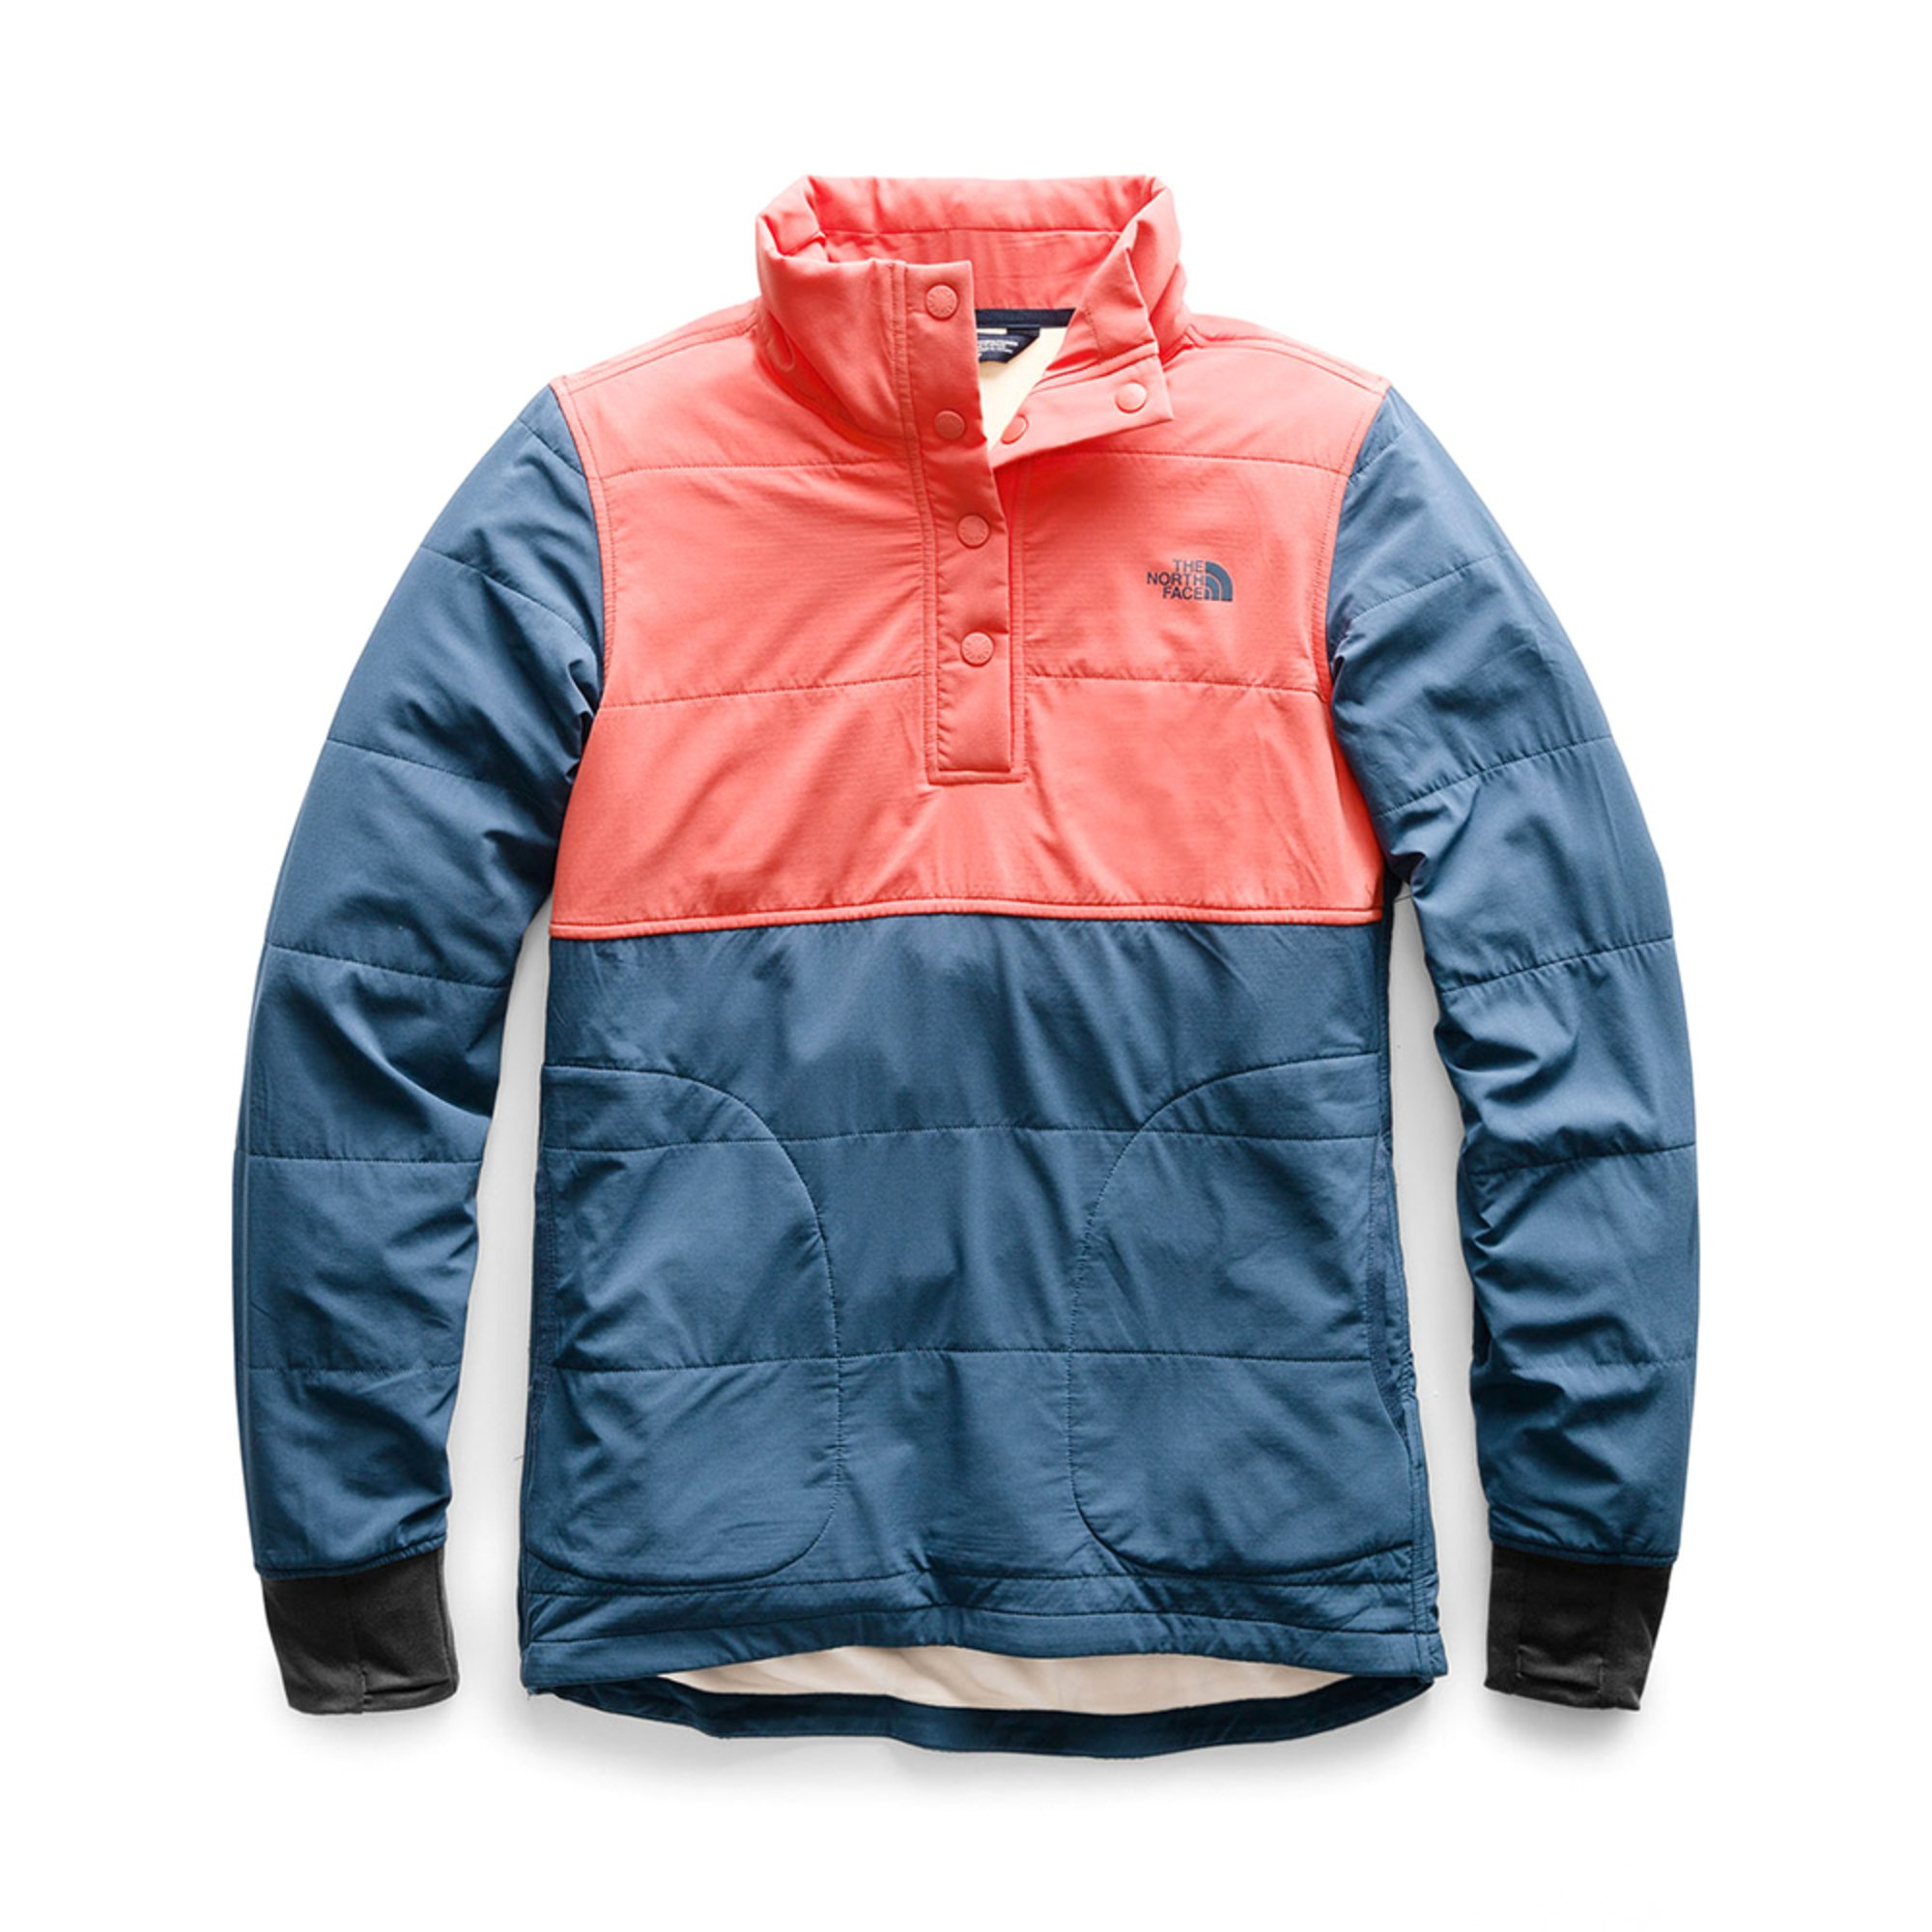 5f8d1fa34 The North Face Women's Mountain Sweatshirt Pullover